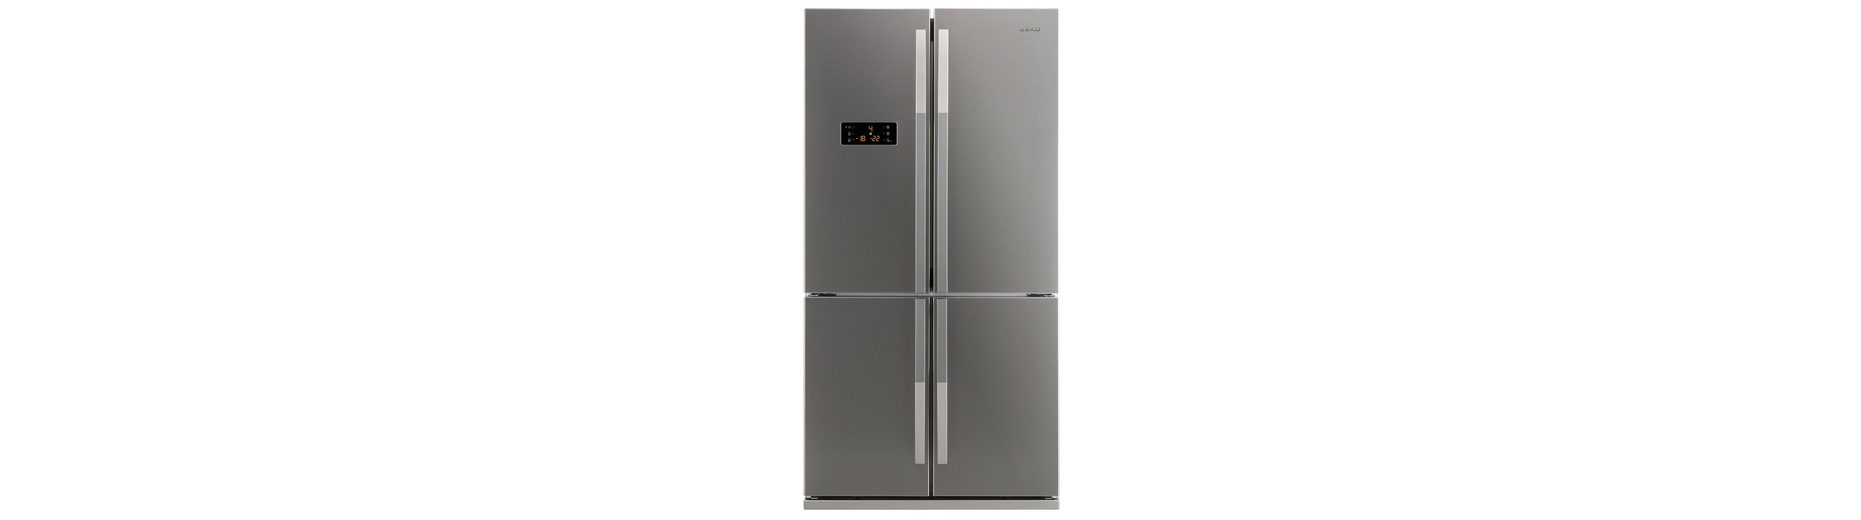 Beko Side by Side GNE 114612 X, A+, 184,5 cm hoch